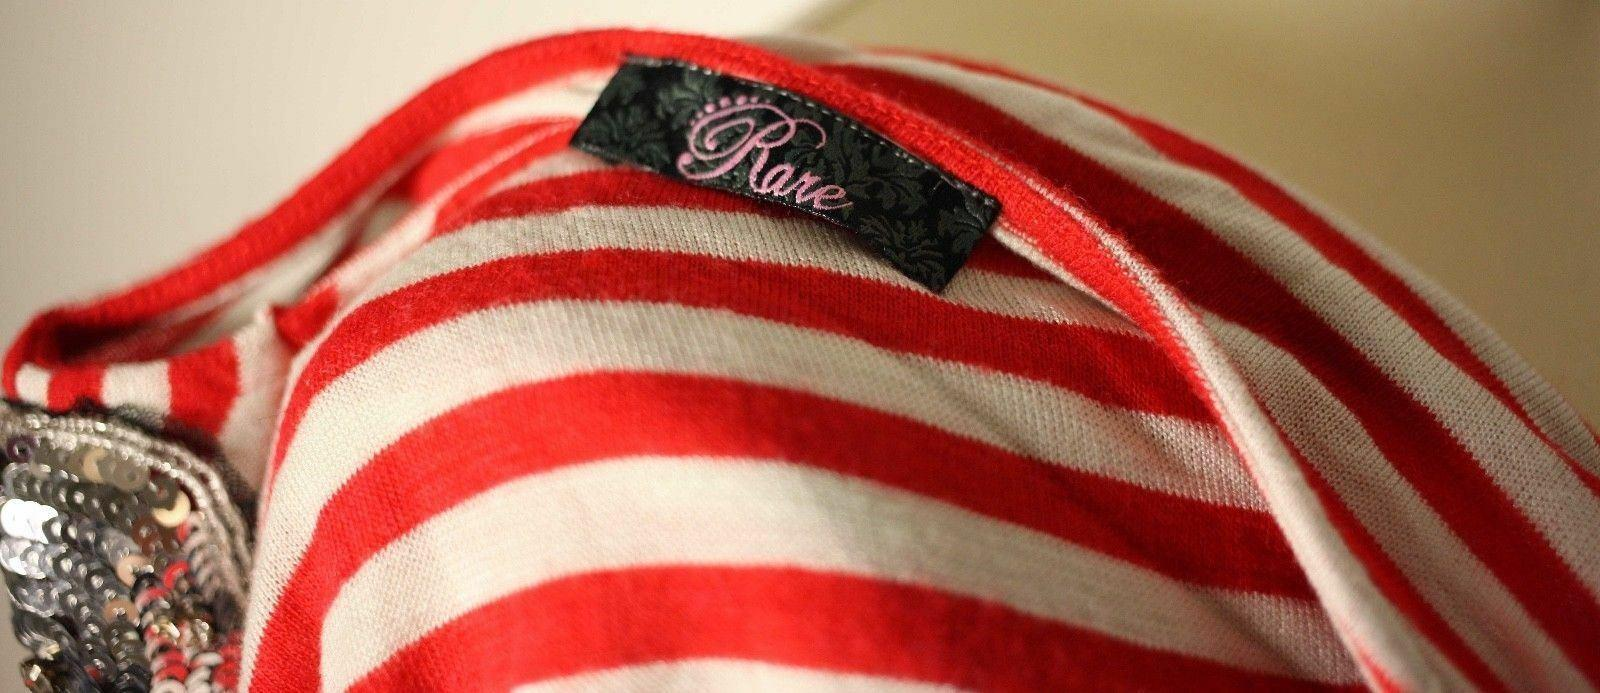 Vintage /'Rare Zinka/' red and white striped ladies sweater with sequin shoulders-UK 8-used-free post worldwide-2 to 14 working days delivery